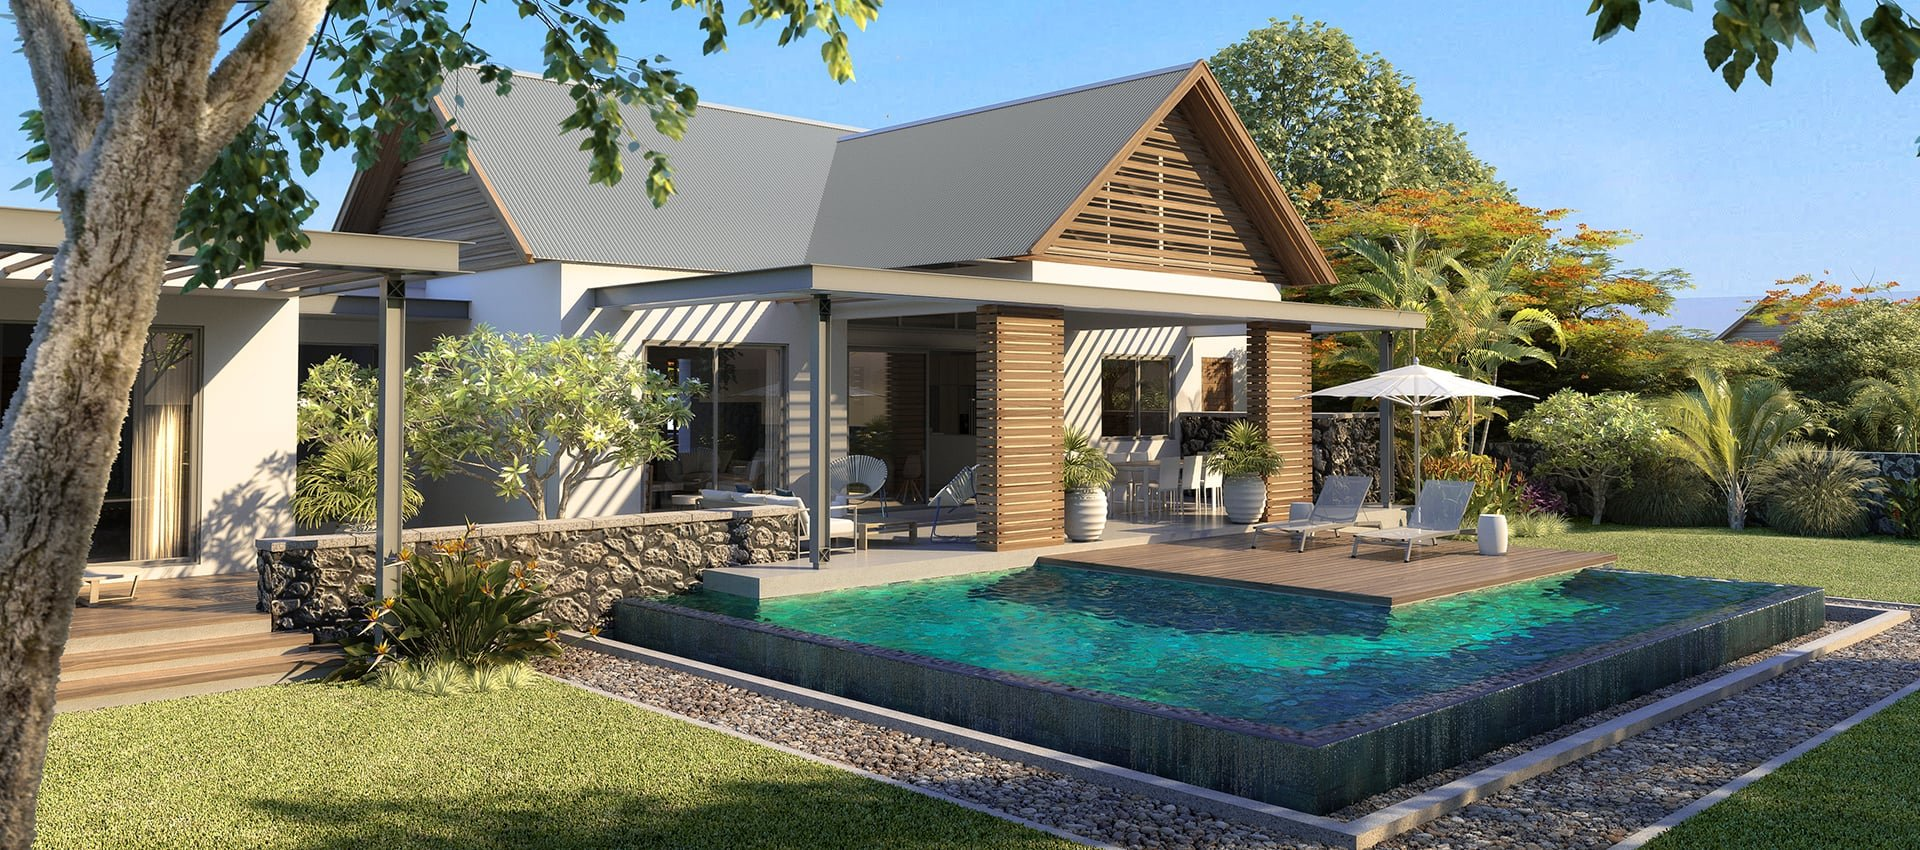 Sale Terraced house - Plaine Magnien - Mauritius